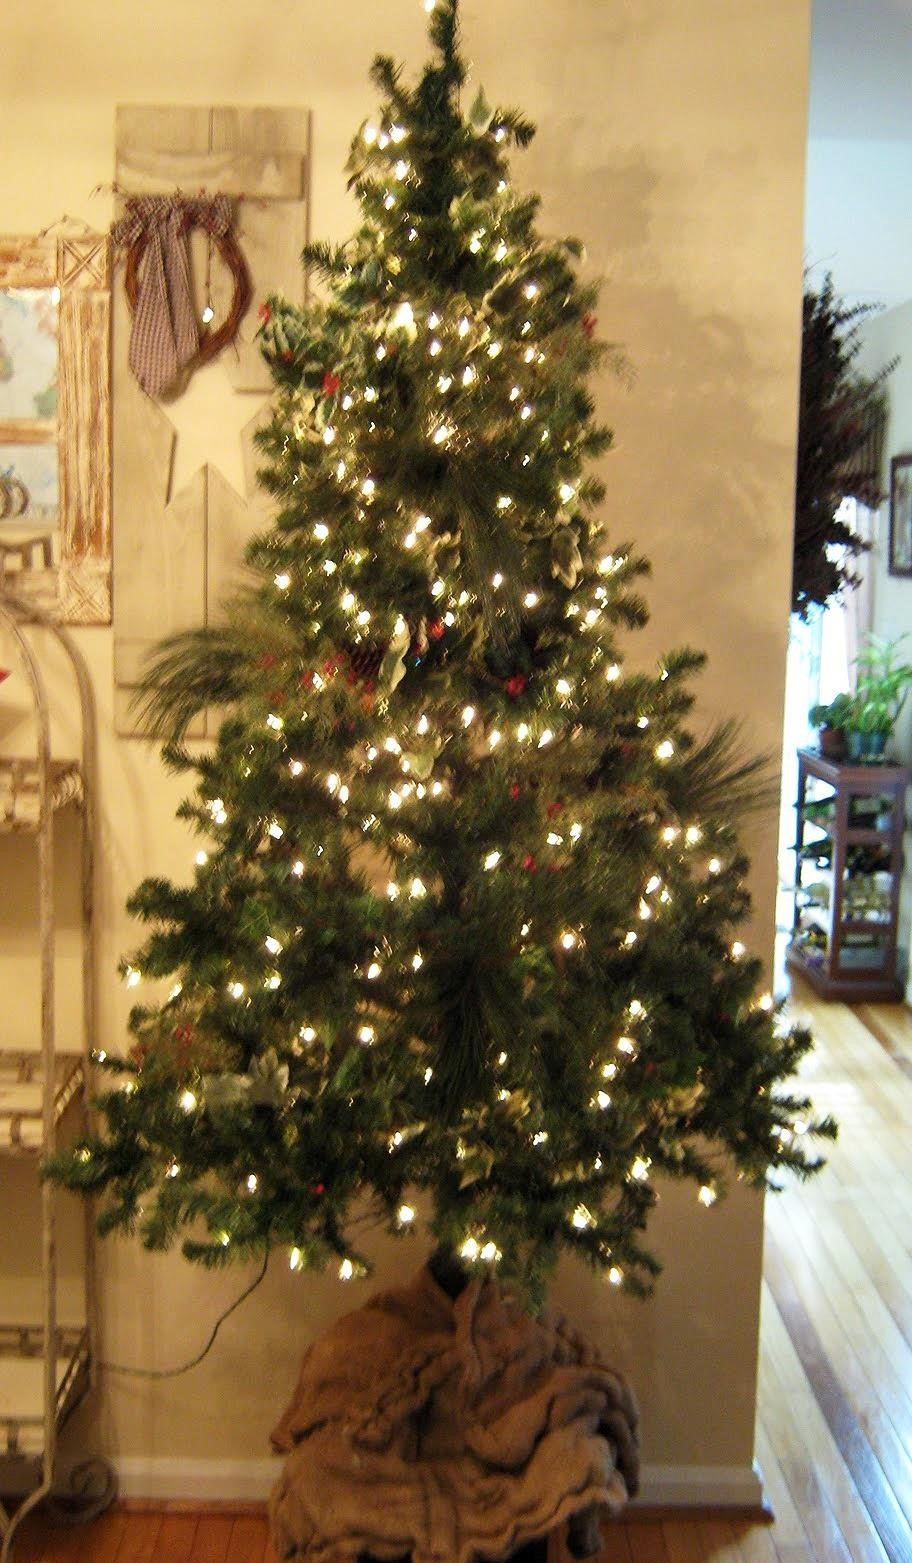 2 after looks like a full tree images via fake it frugal - Christmas Tree Filler Decorations